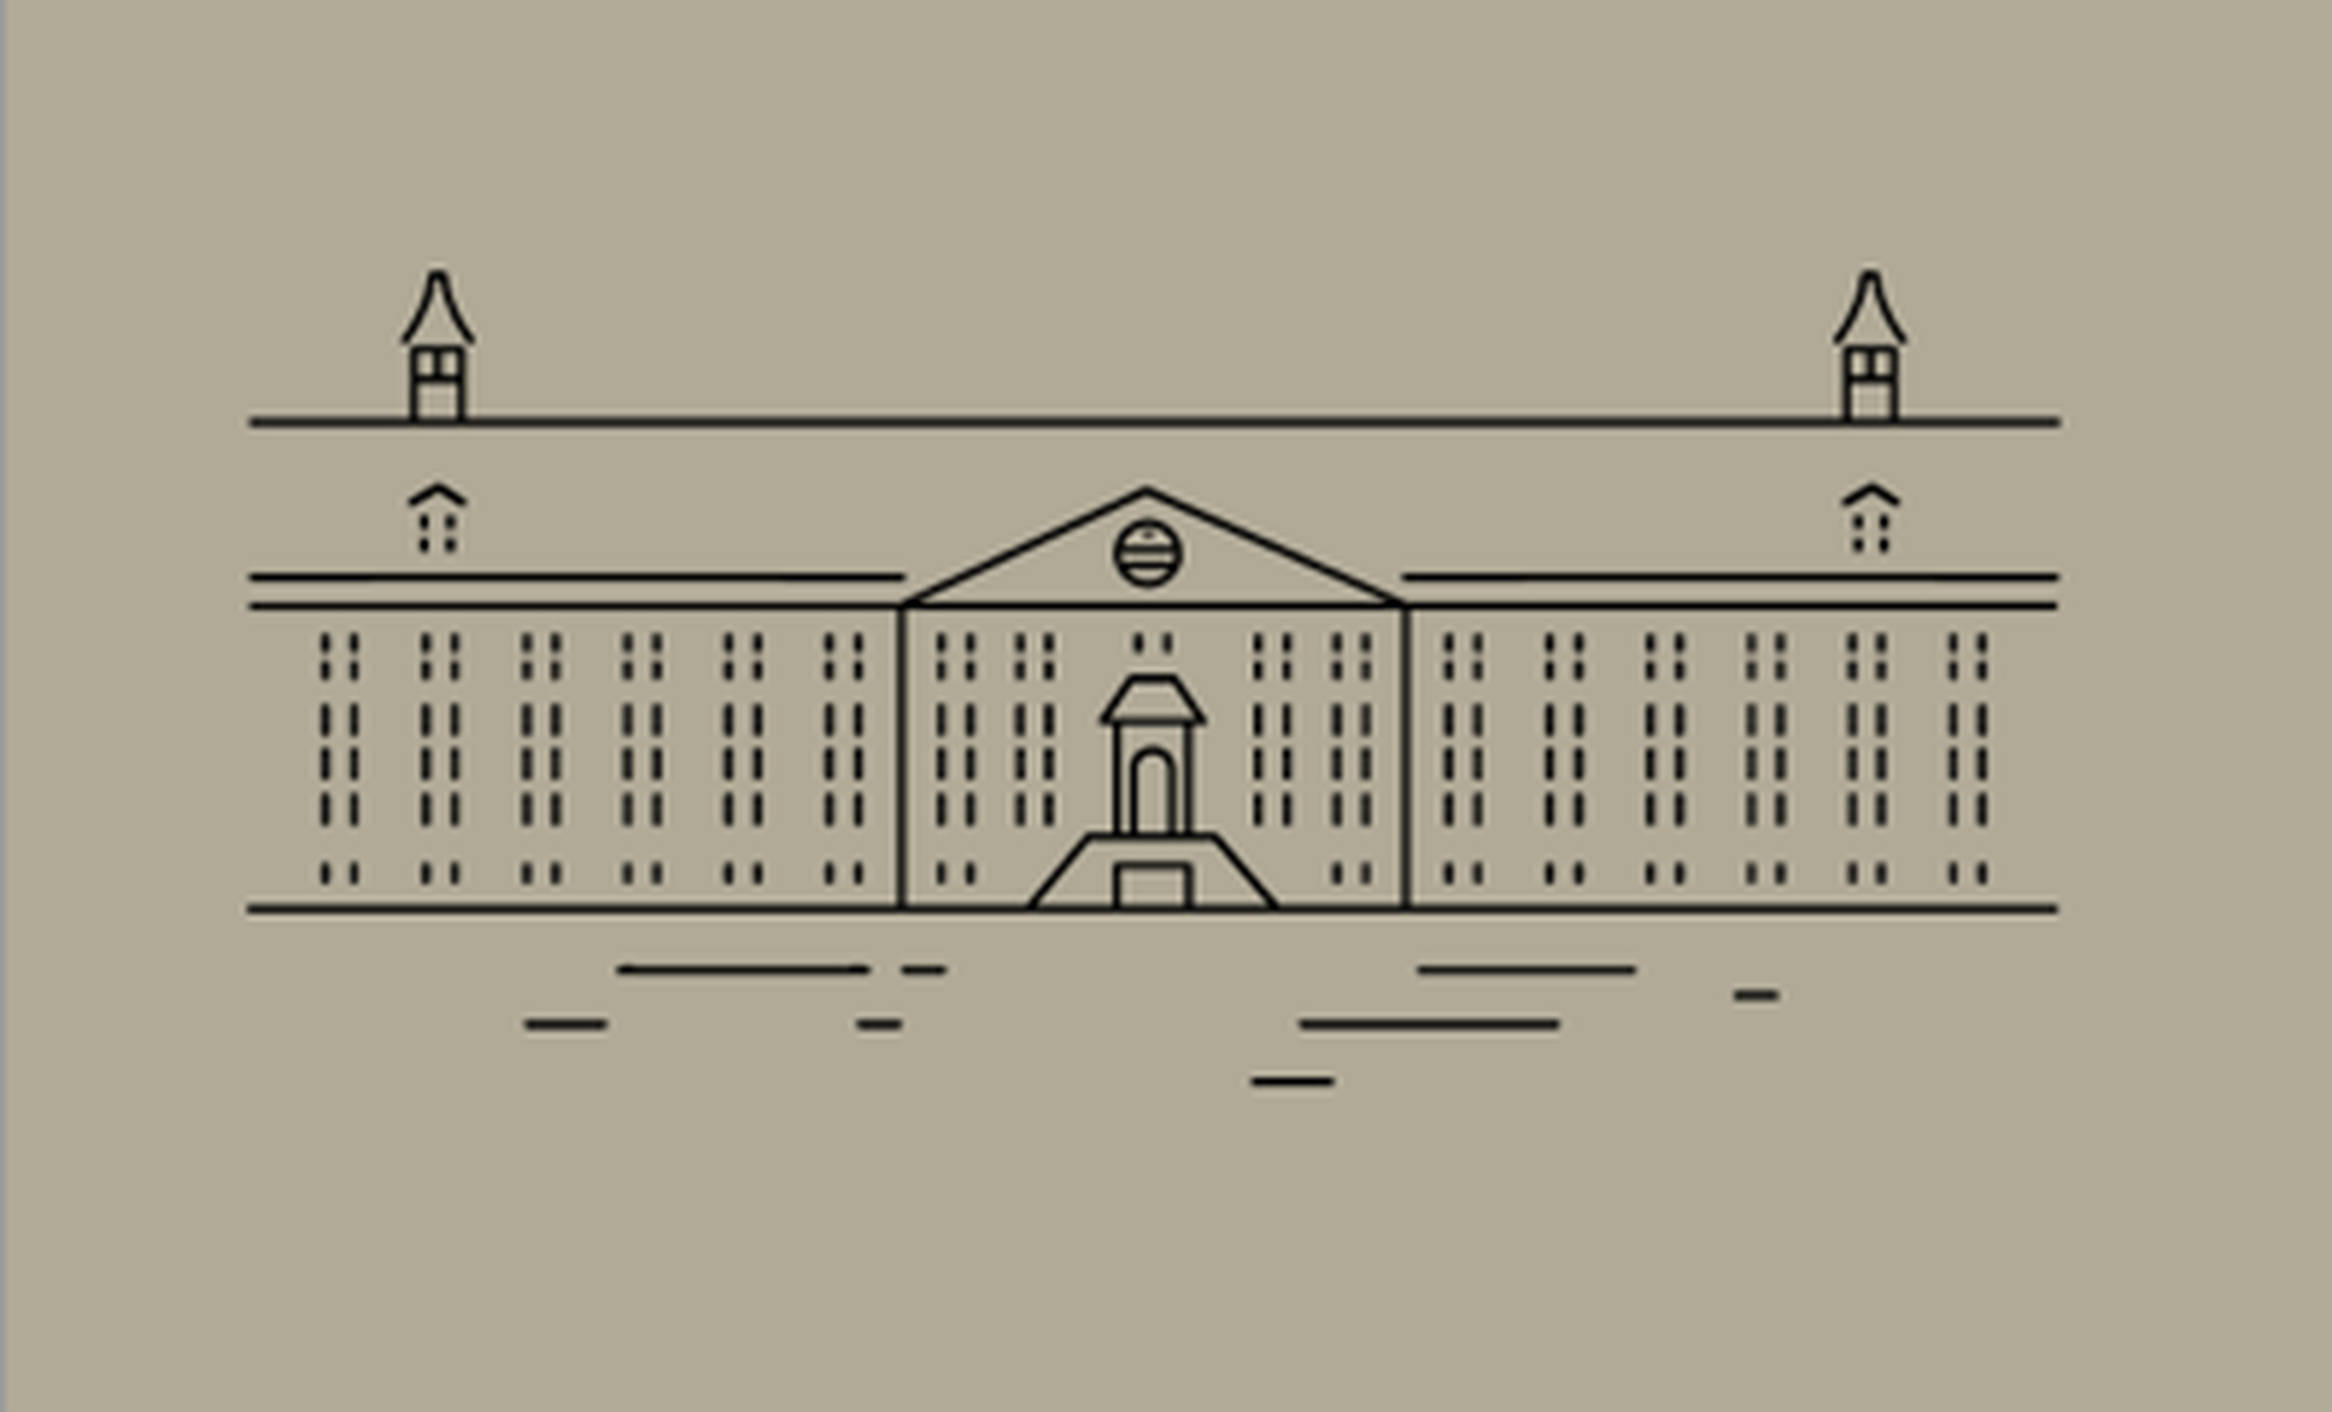 Hermitage Amsterdam - illustration by Fabrique